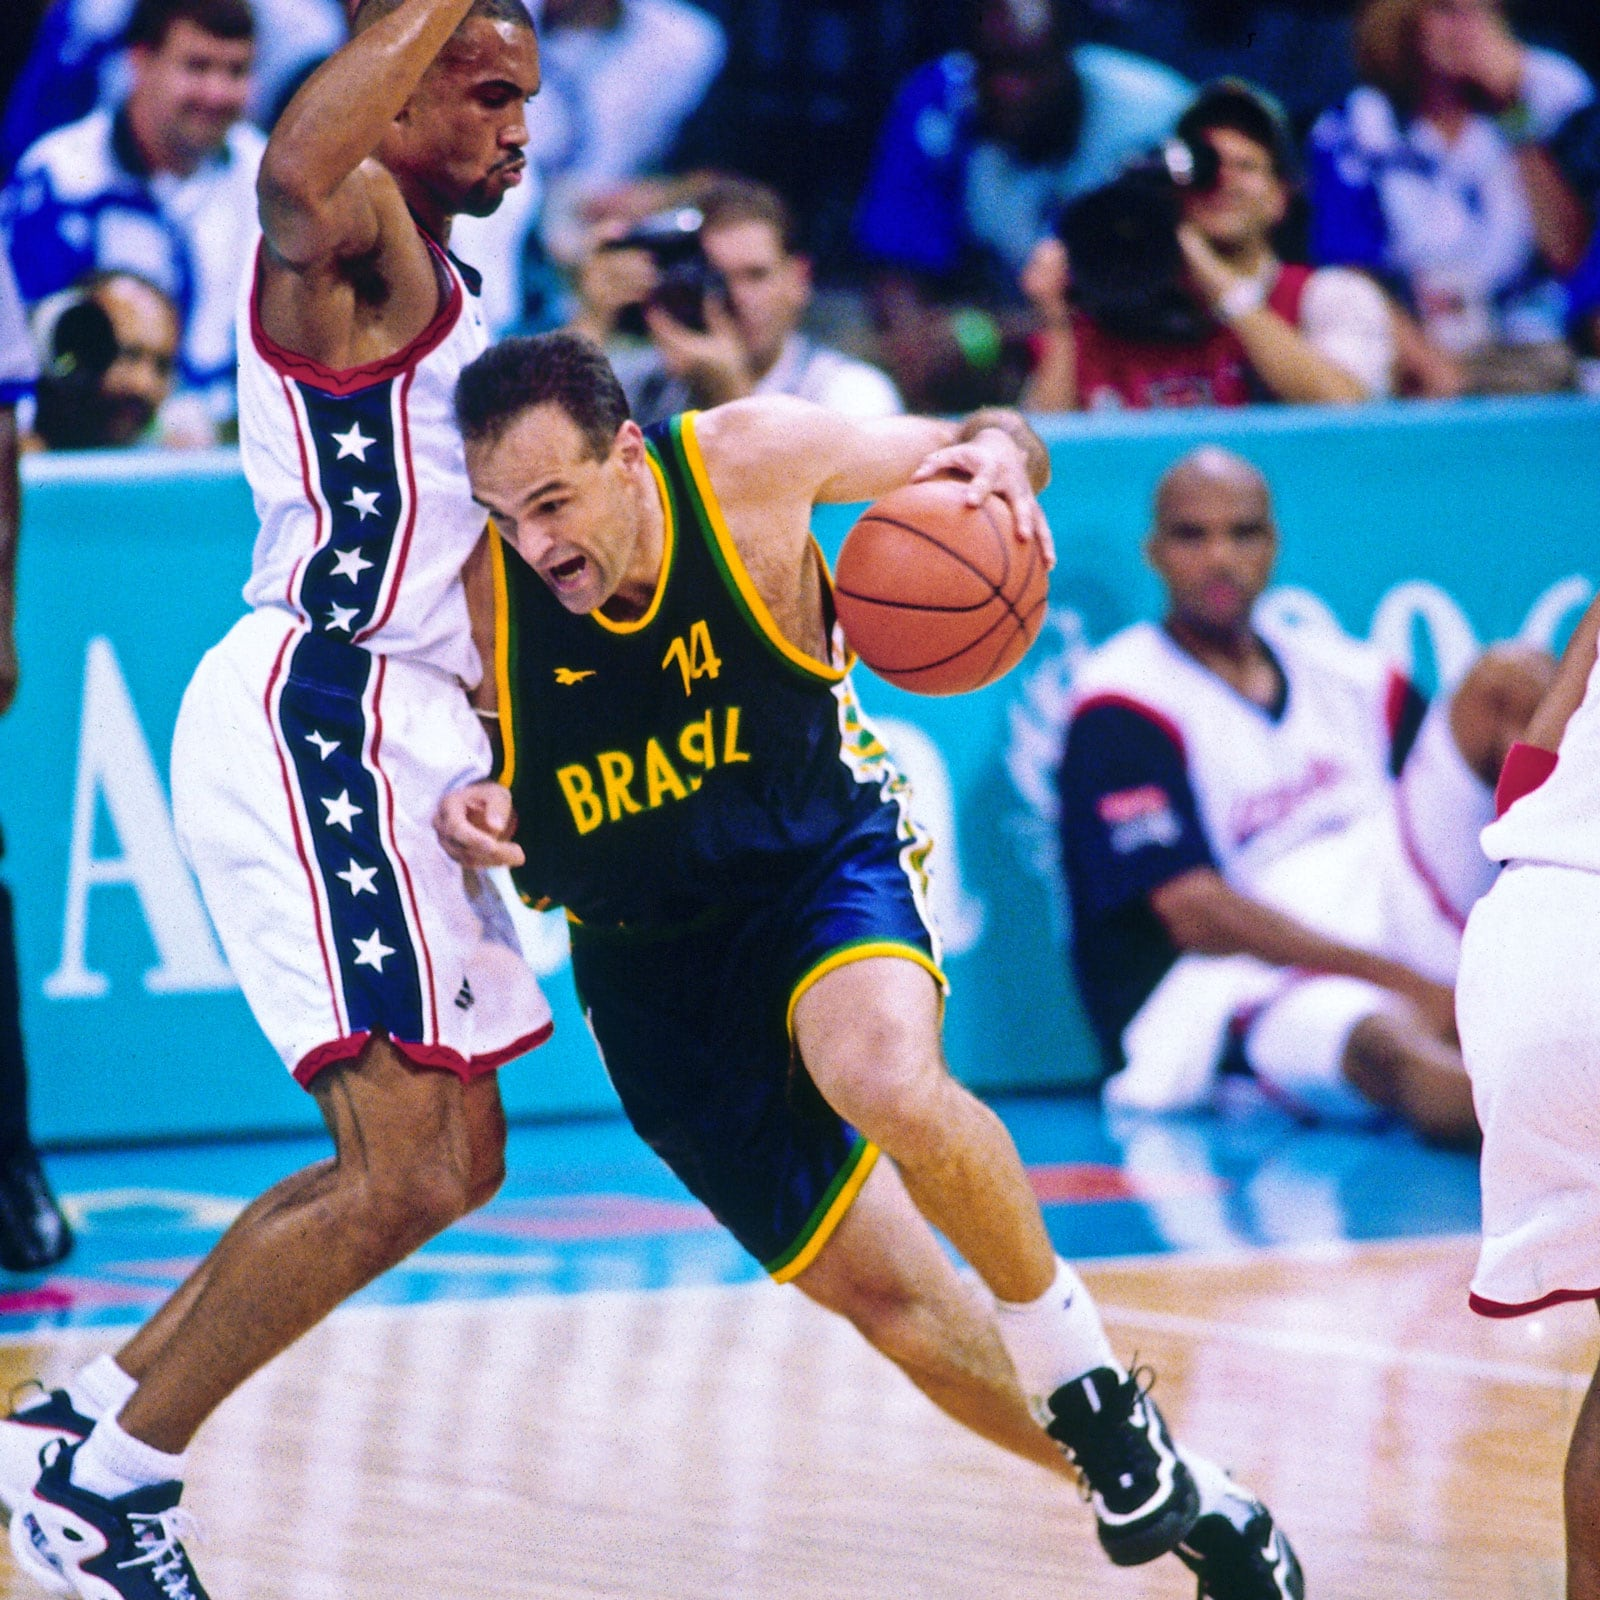 Oscar Schmidt #14 of Brazil drives against the United States during the 1996 Summer Olympics at Morehouse College Gymnasium on July 30, 1996 in Atlanta, Georgia.